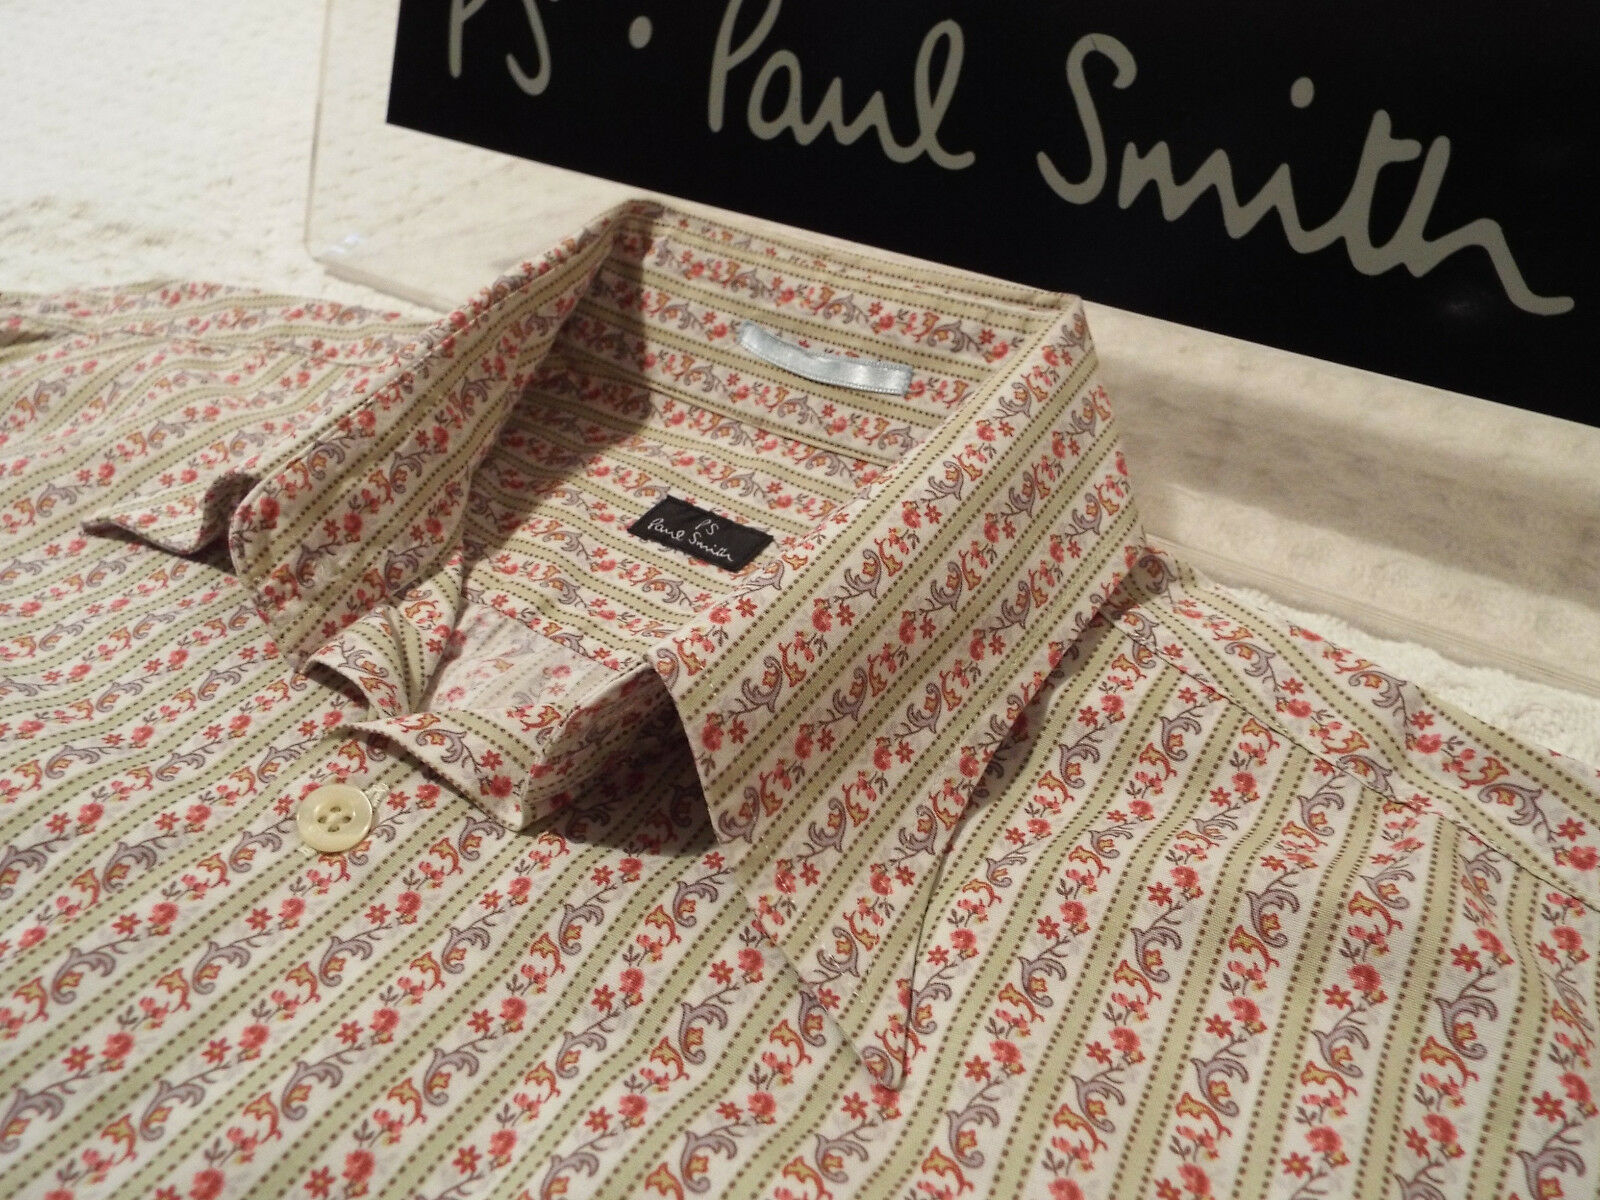 PAUL SMITH Mens Shirt  Size S (CHEST 42 )  RRP +  FLORAL STYLE STRIPES